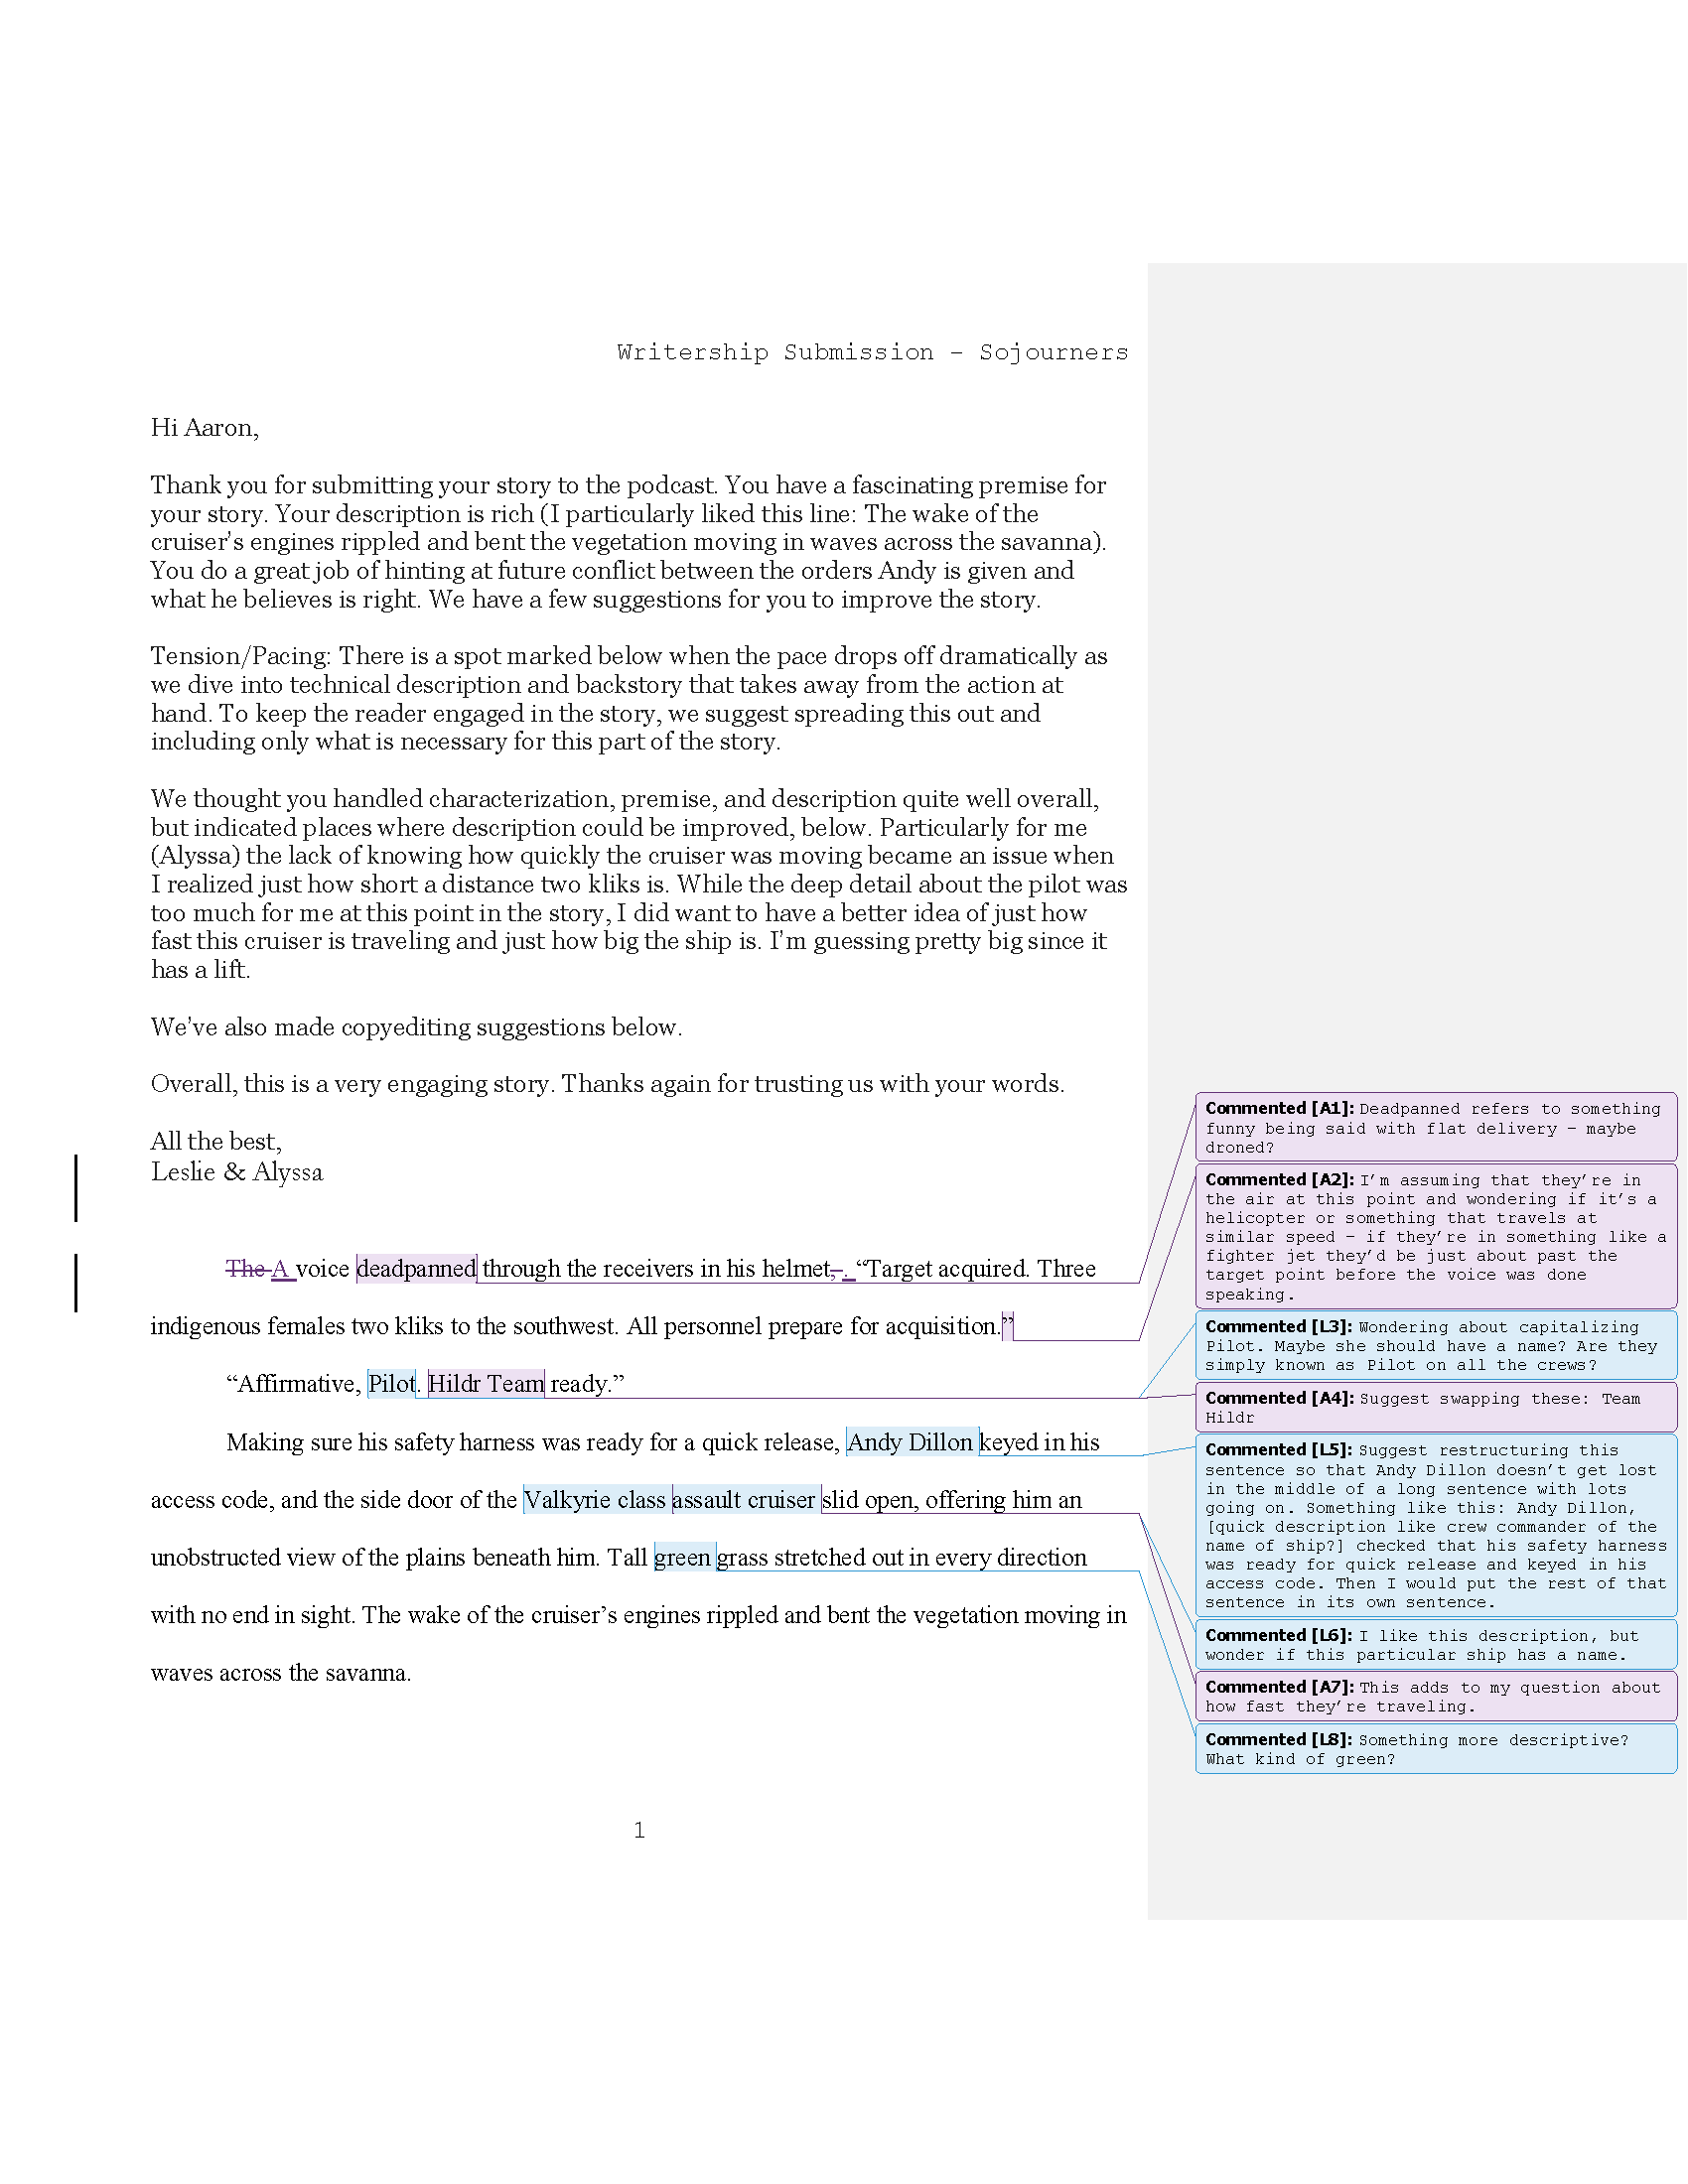 Episode 31 - Aaron Hubble - Soujourners_Page_1.png